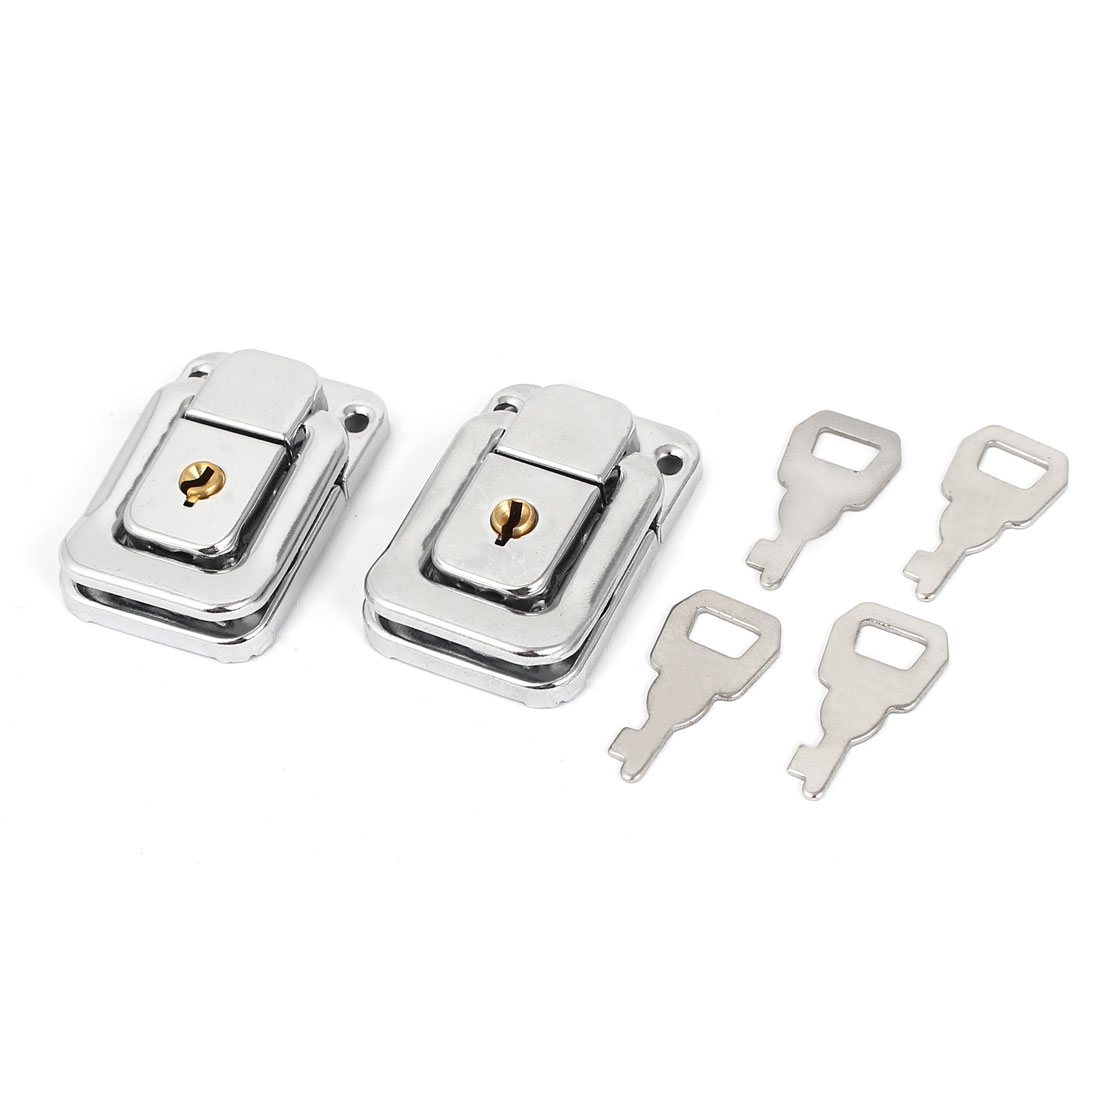 Chest Boxes Handbag Rectangle Shape Metal Clasp Lock Toggle Latch 2pcs w Keys